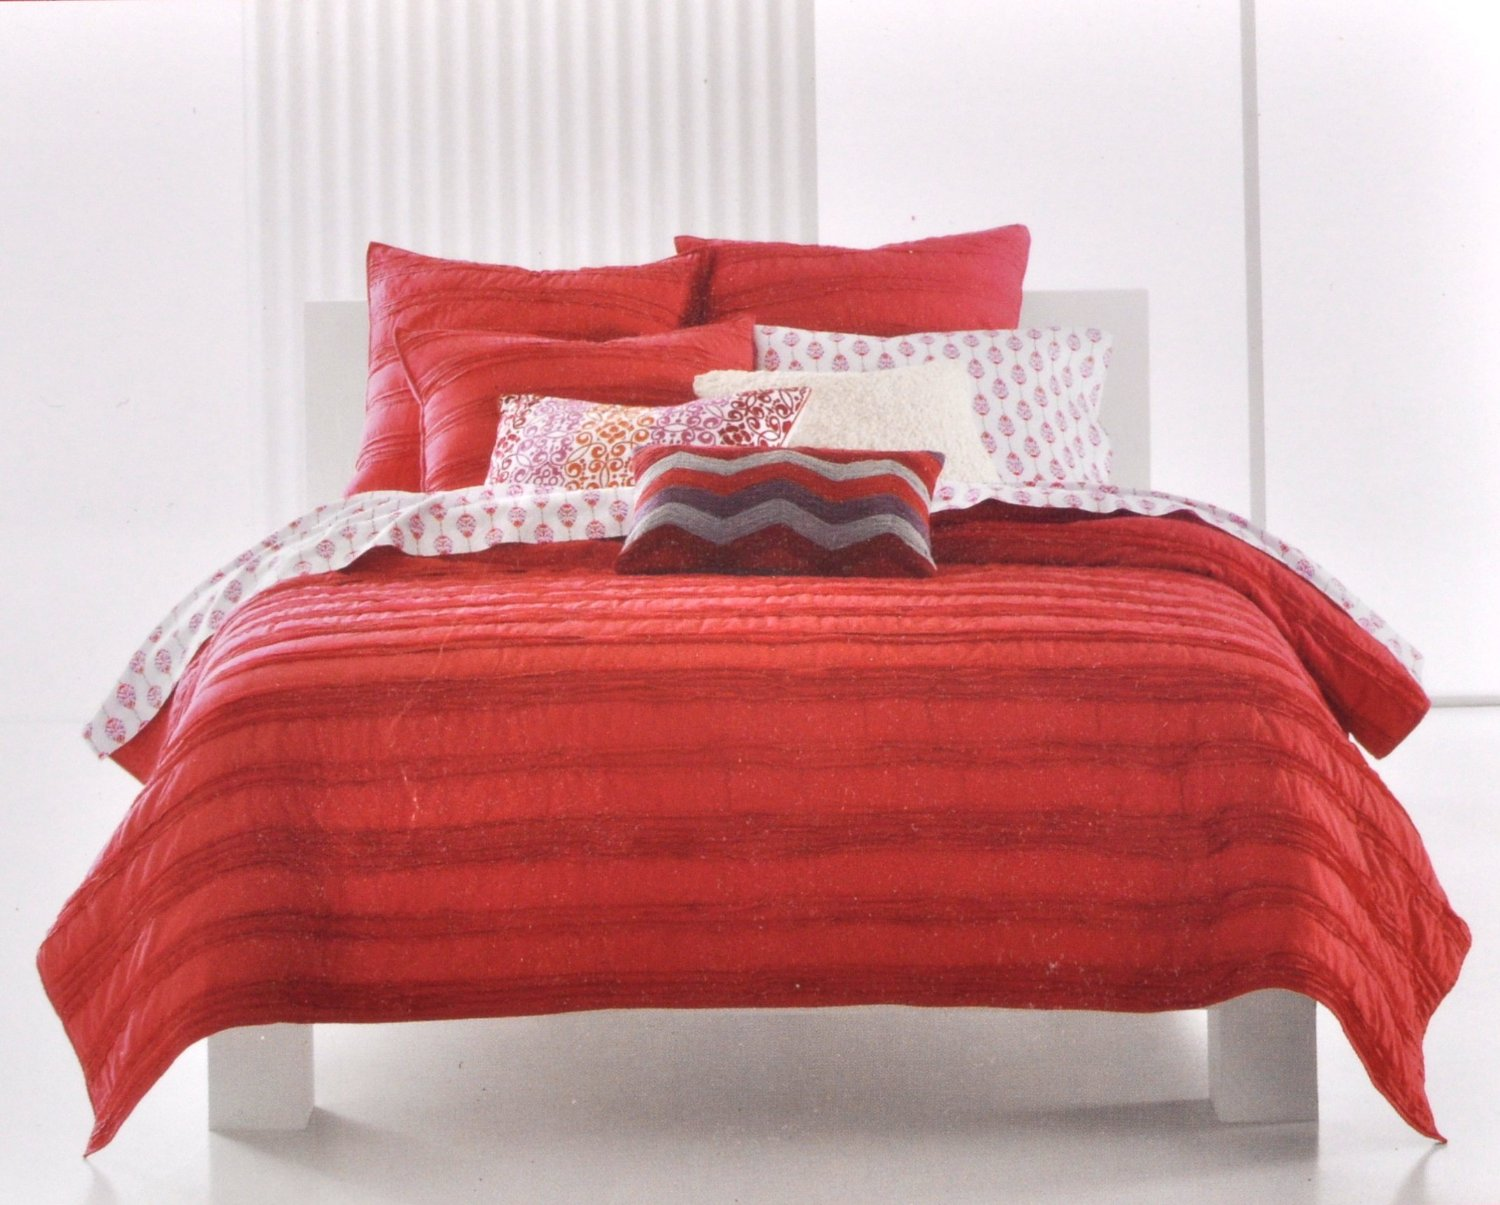 Total Fab Coral Colored Comforter And Bedding Sets